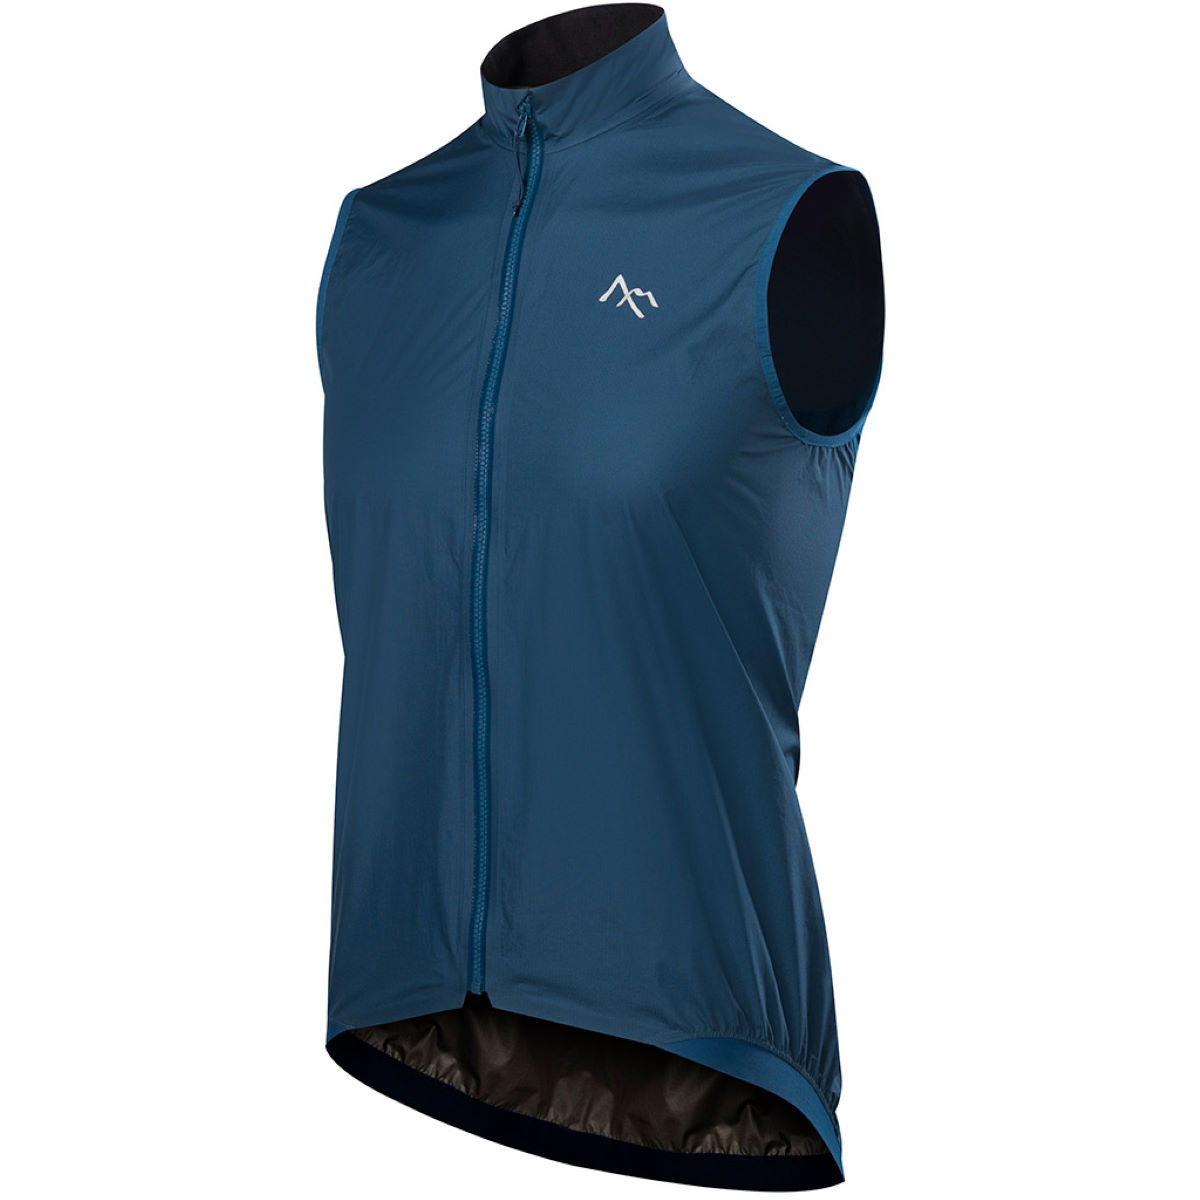 Gilet 7Mesh Resistance (coupe-vent, sans manches) - XL 2 Ball Blue